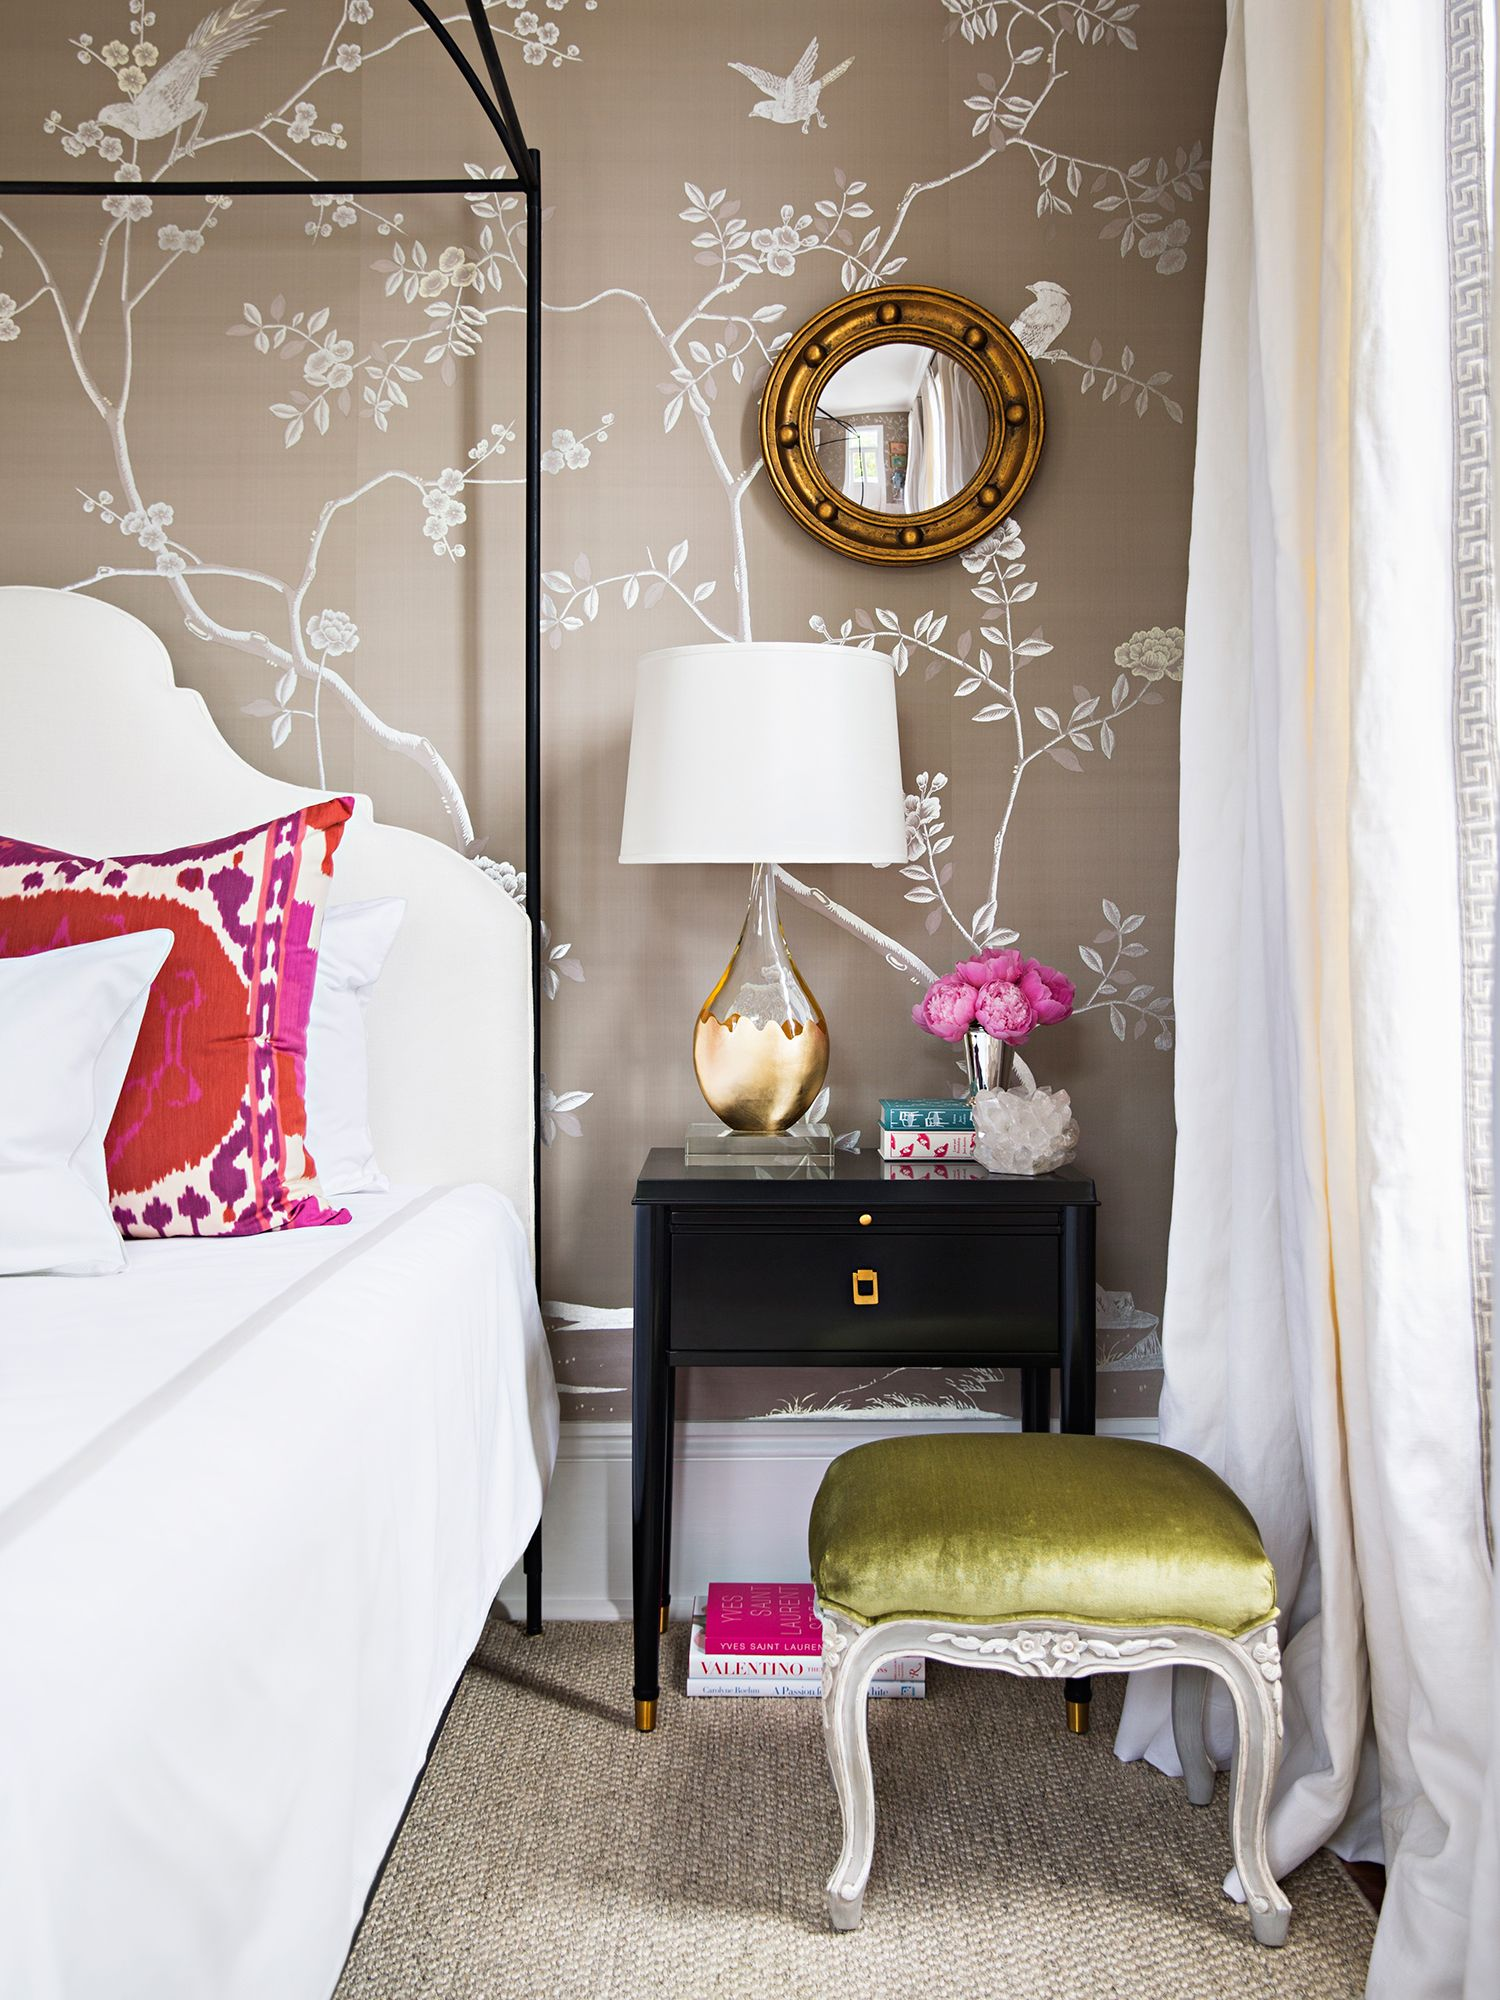 Paloma wasinvited to design the Dauphine Suite, a glamorous bedroom and terrace, for the 2016 Traditional Home Southern Style Now Showhouse in New Orleans. The room was designed around a stunning, custom-made deGournay wallpaper featuring 12 carat white gold and aluminum hand-gilding on a silk background. The room features a beautiful bed by Tara Shaw …